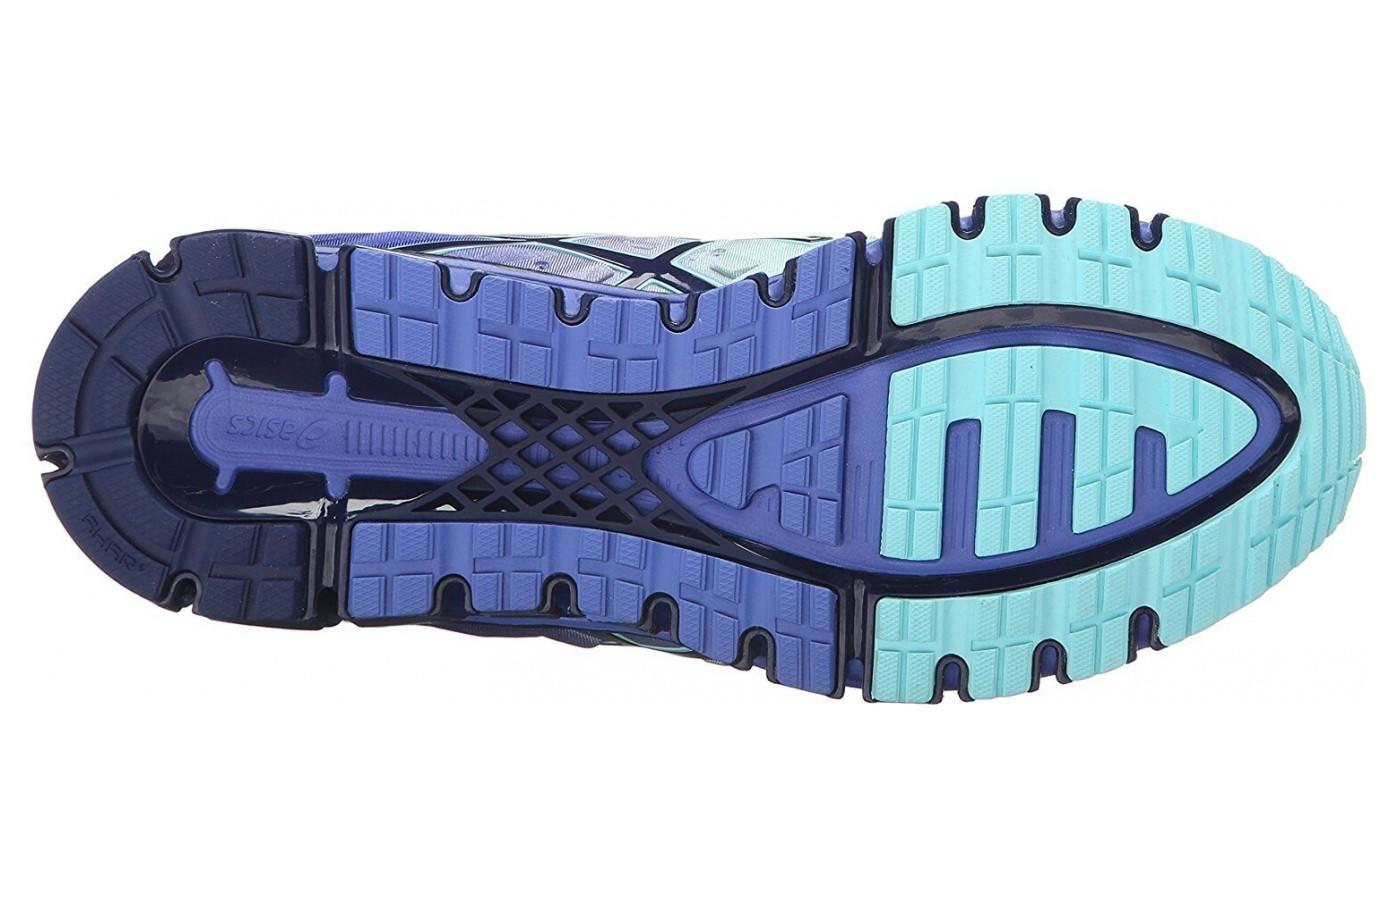 The outsole is made from Asic's High Abrasion Rubber